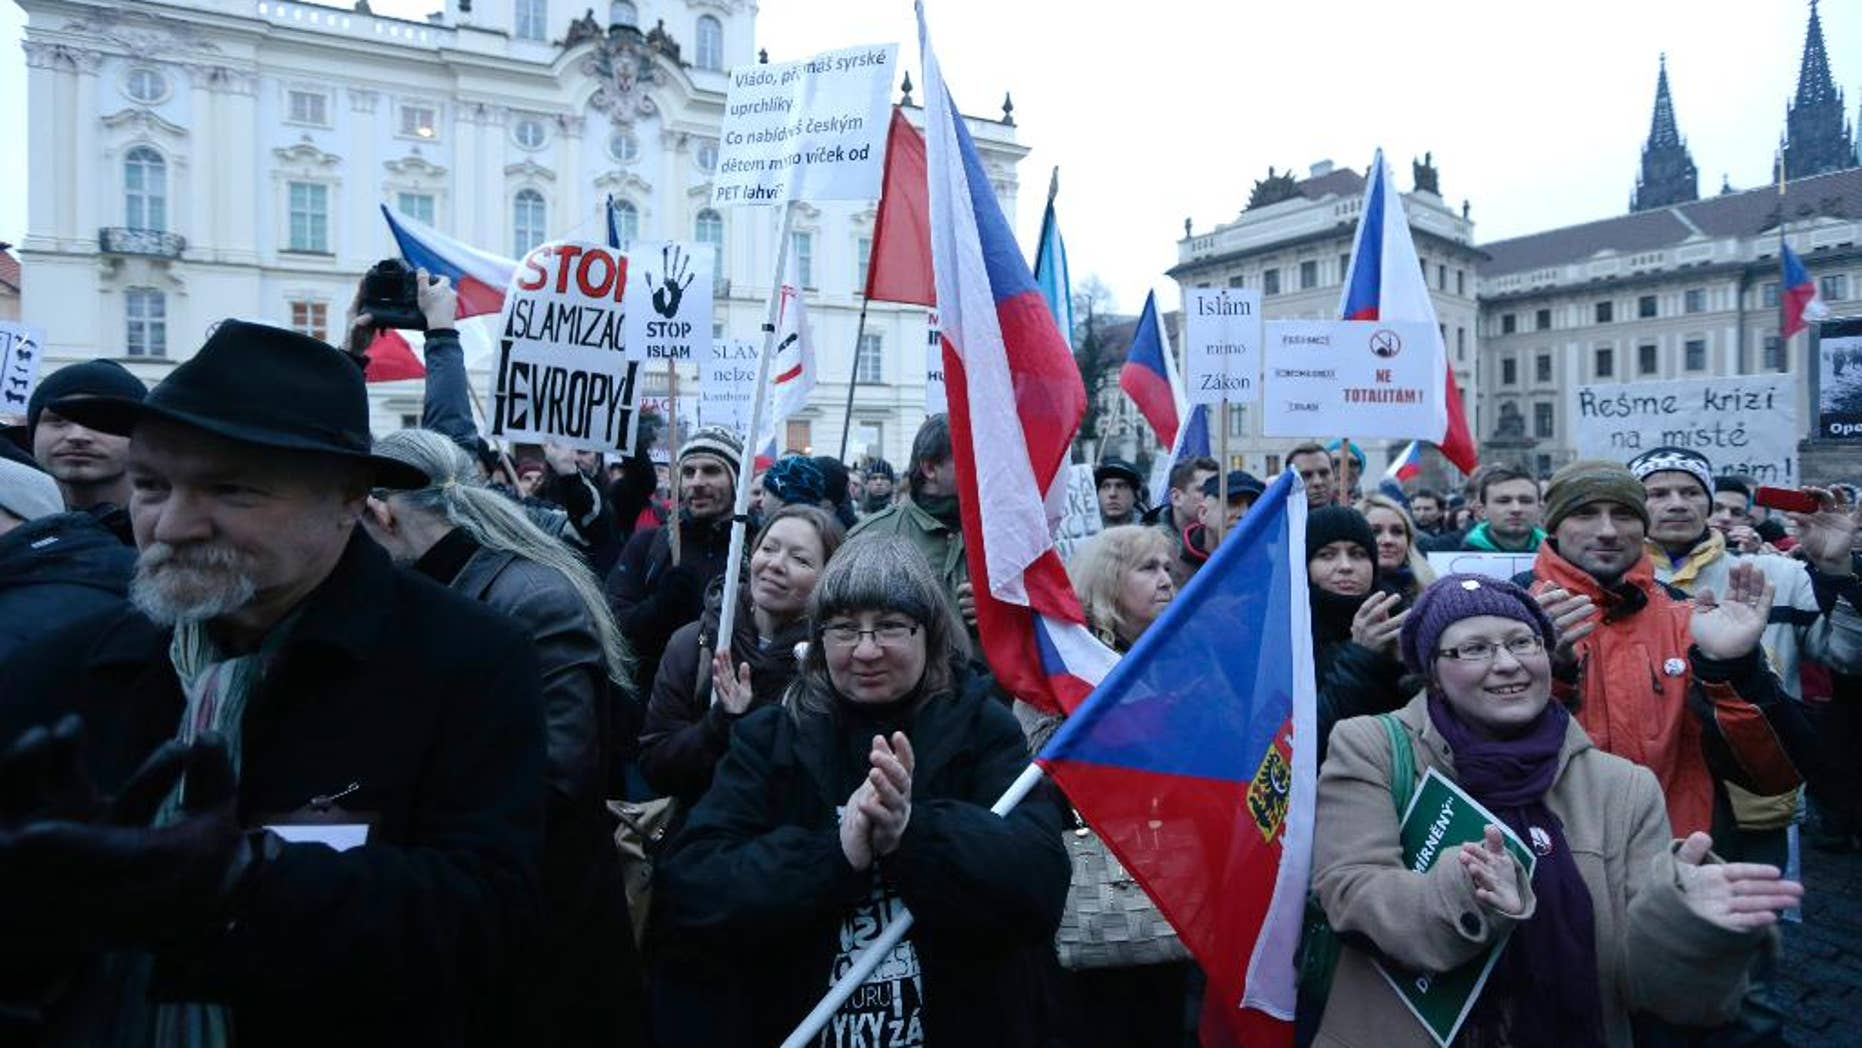 Hundreds of people gather during an anti-Islam rally in Prague, Czech Republic, Friday, Jan. 16, 2015. The gathering came as French and German authorities arrested at least 12 people Friday suspected of links to the Islamic State group and a Paris train station was evacuated, with Europe on alert for new potential terrorist attacks. (AP Photo/Petr David Josek)